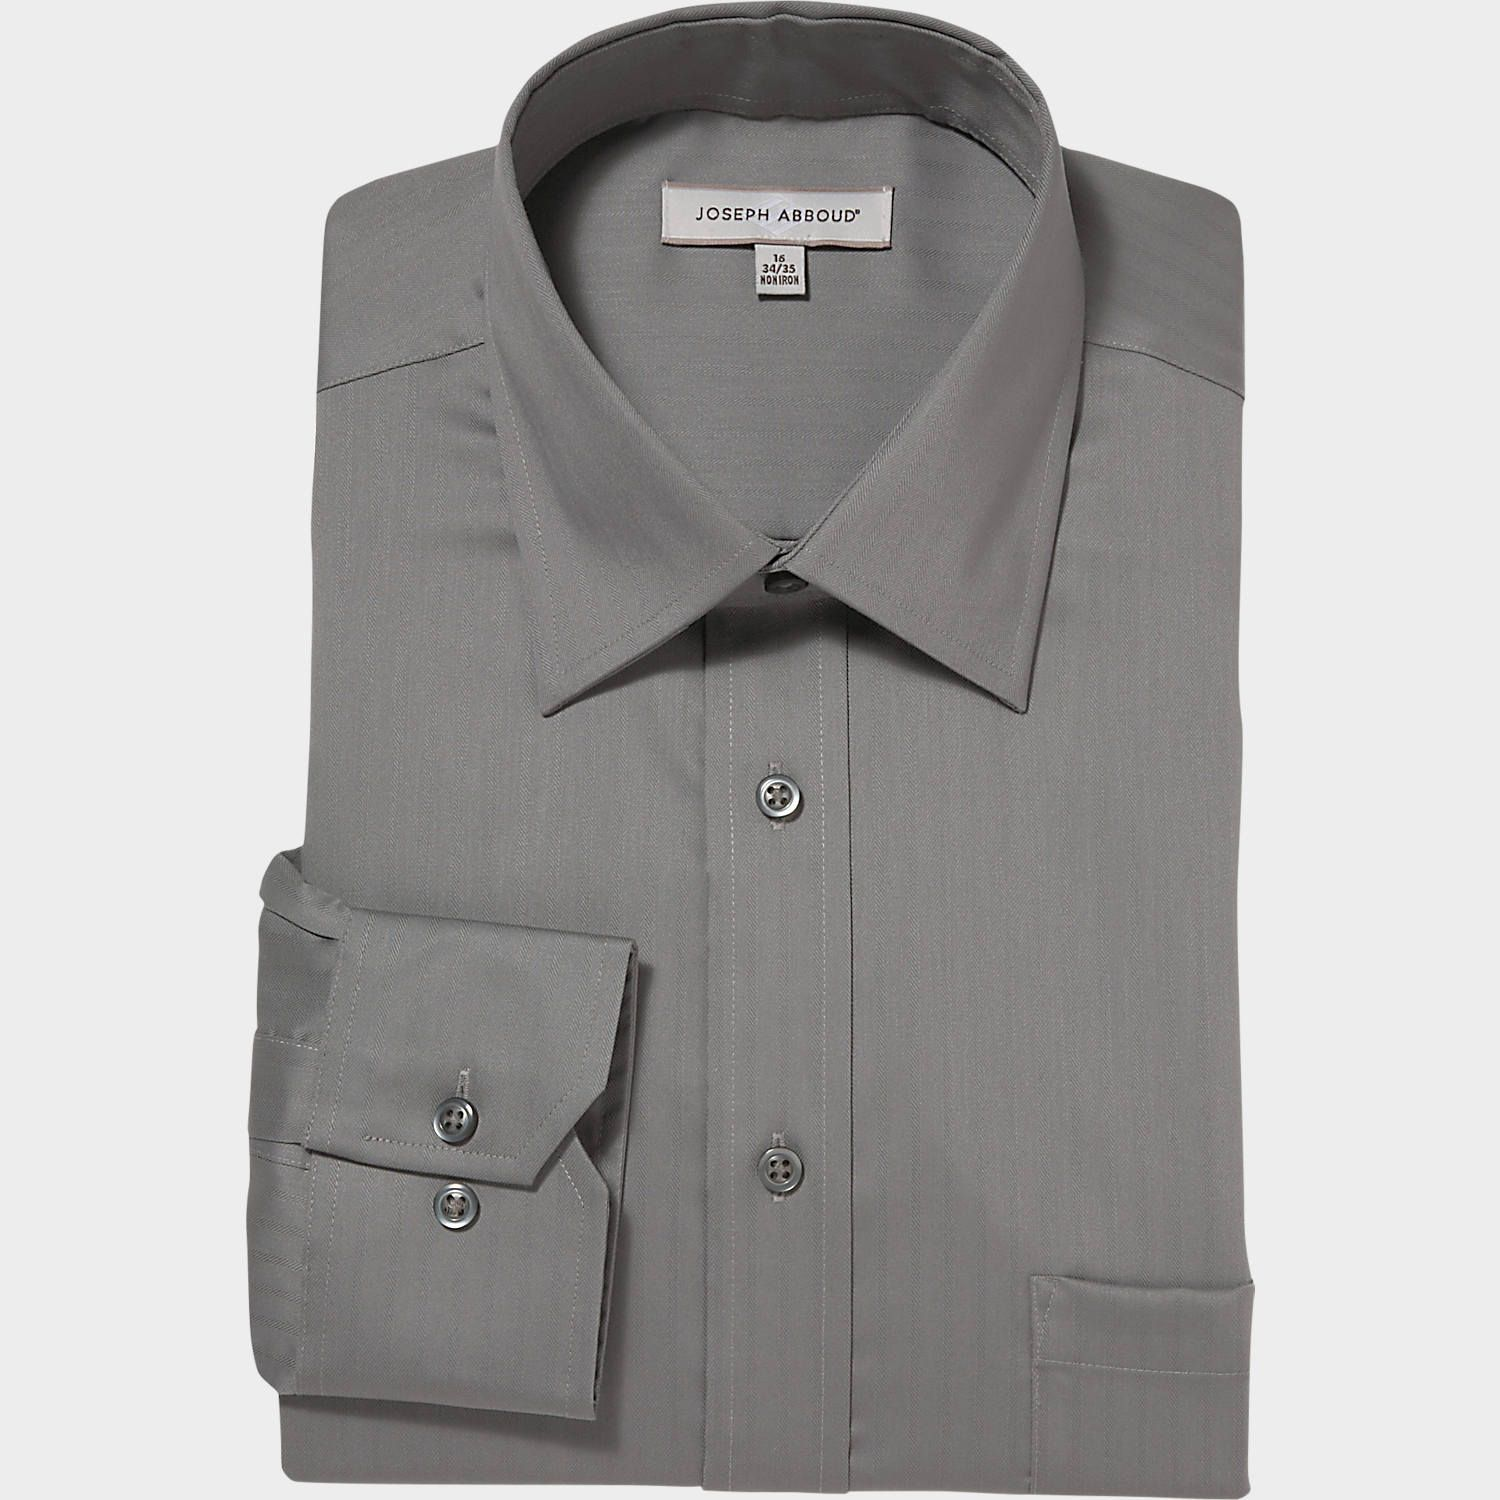 Joseph Abboud Chrome Dress Shirt Men S Wearhouse Mens Shirt